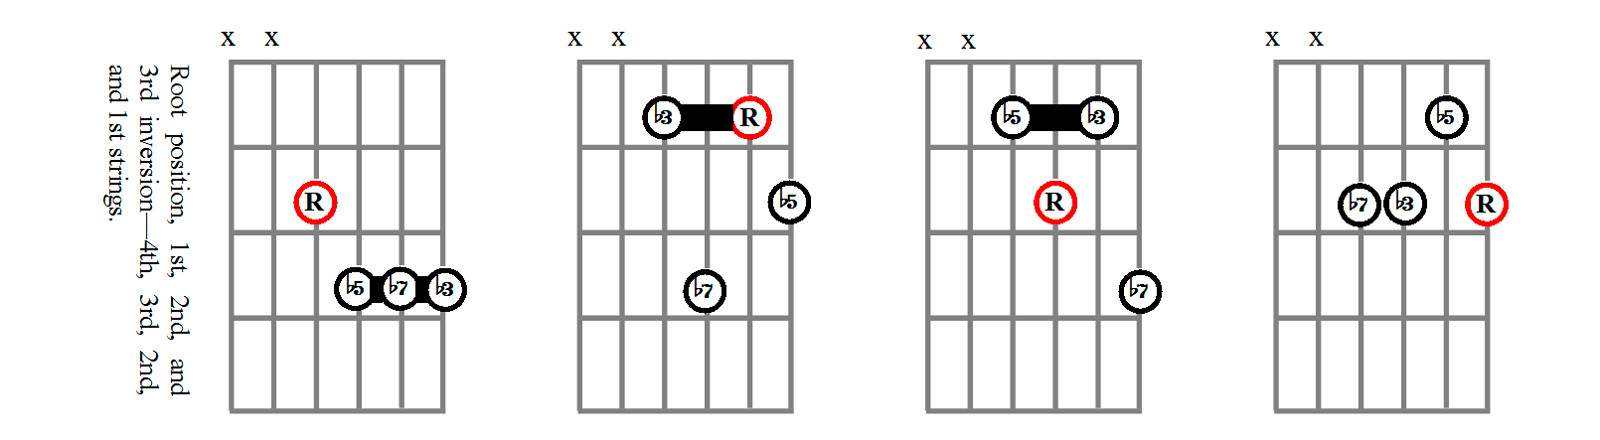 Minor Seventh Flat-Five Chord Shapes Using the 4th, 3rd, 2nd, and 1st Strings